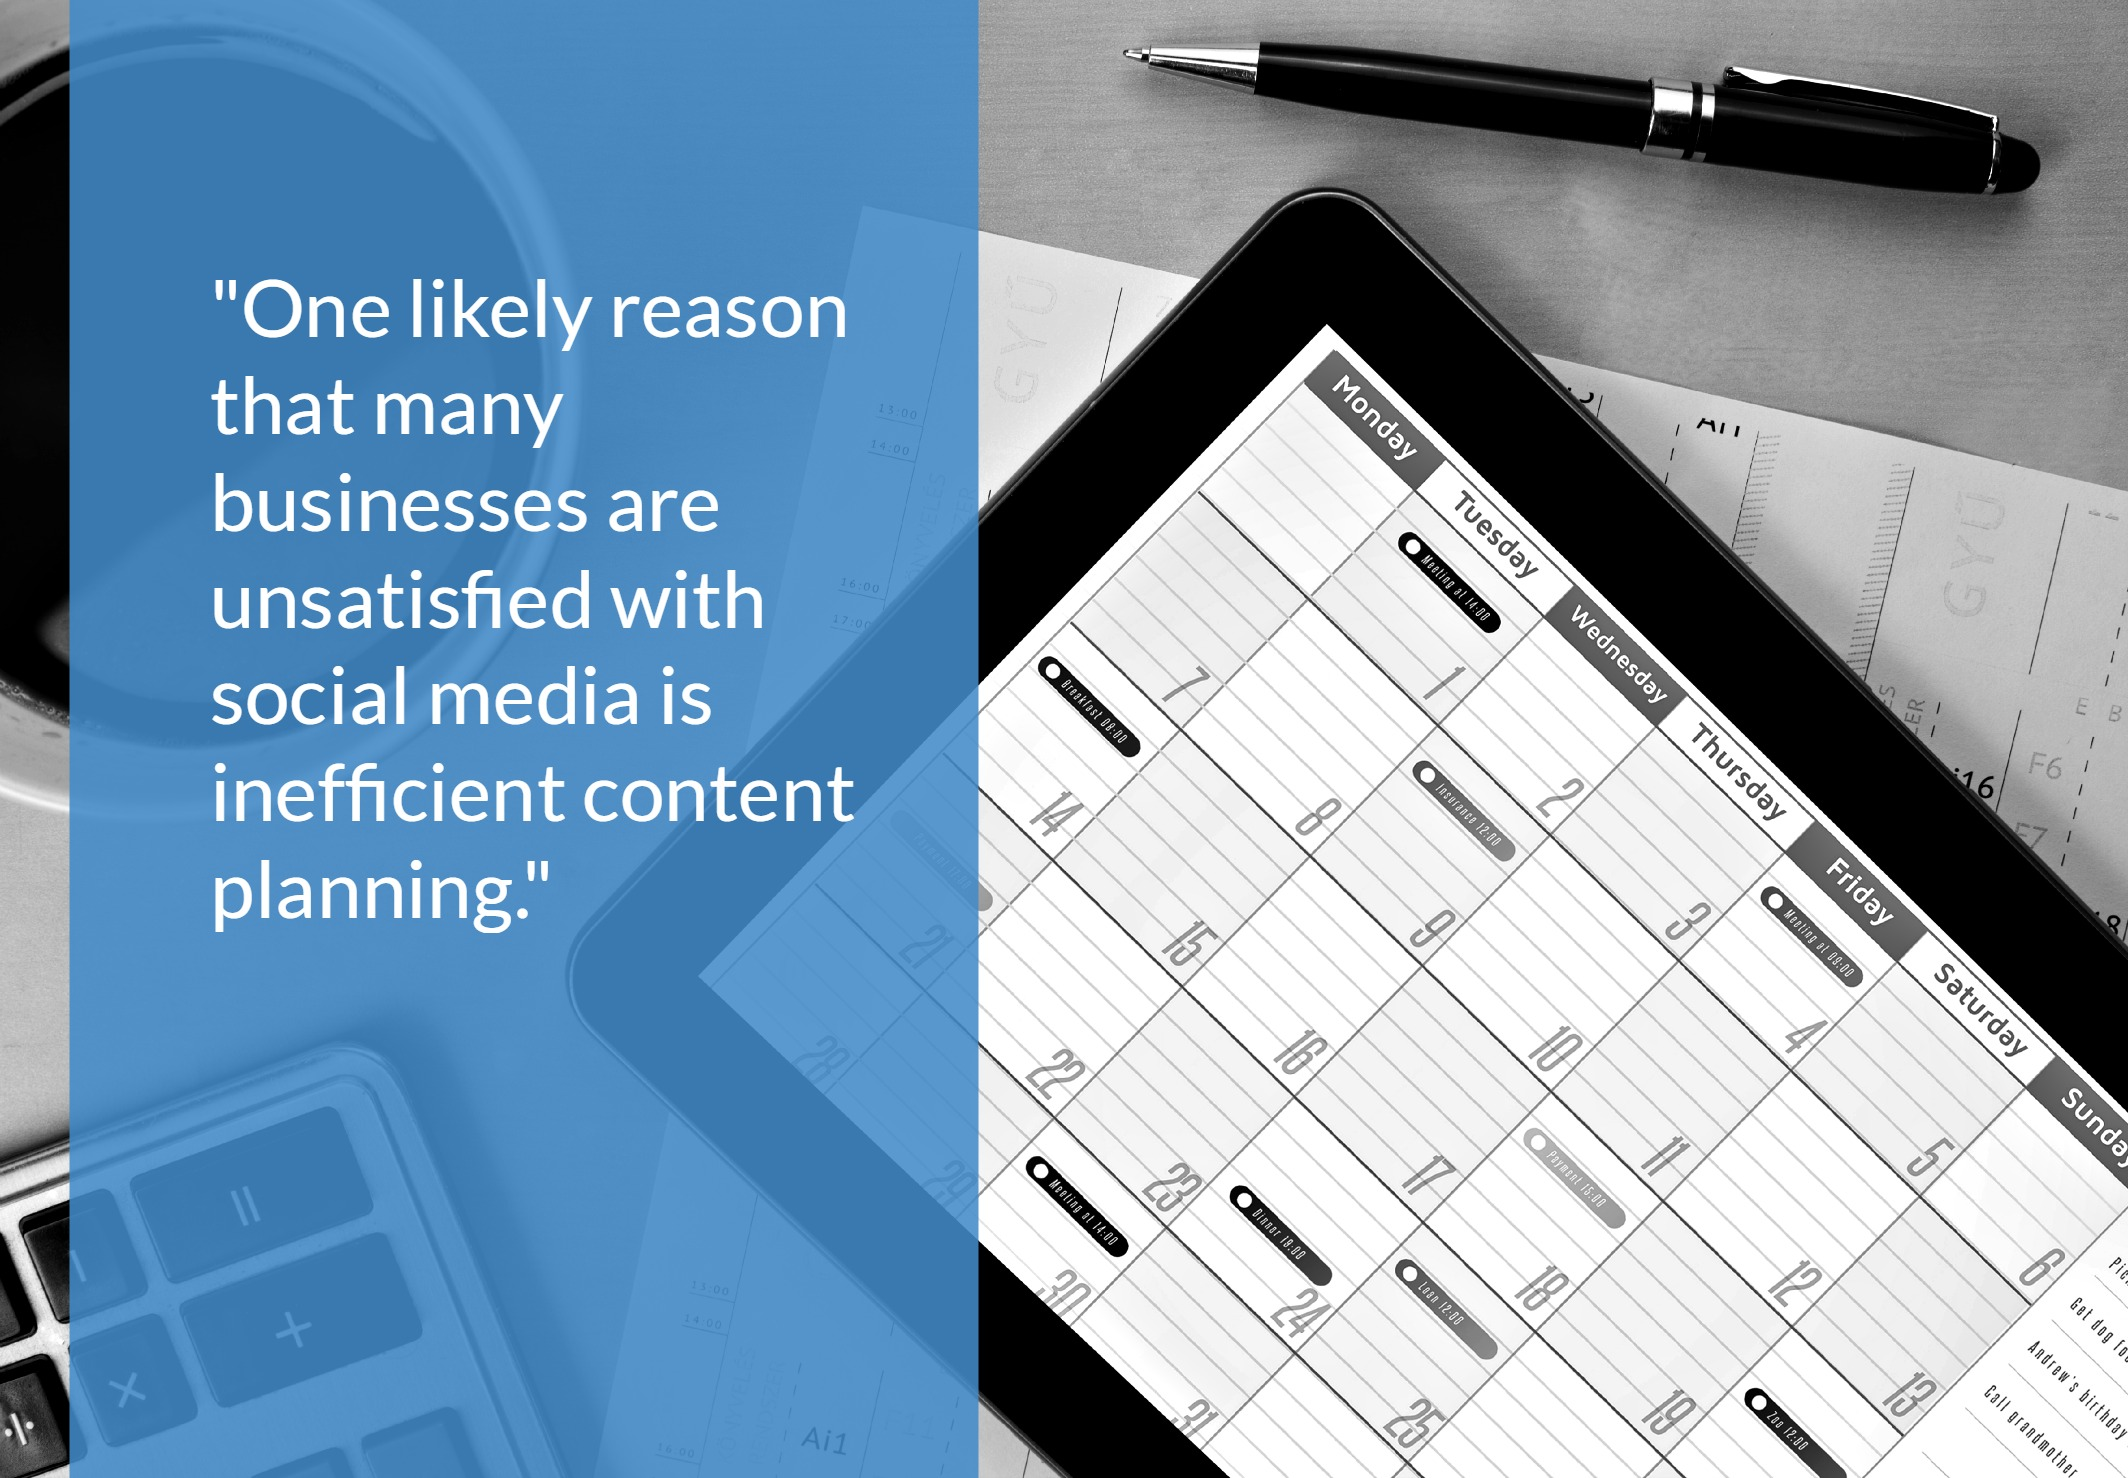 One likely reason that many businesses are unsatisfied with social media is inefficient content planning